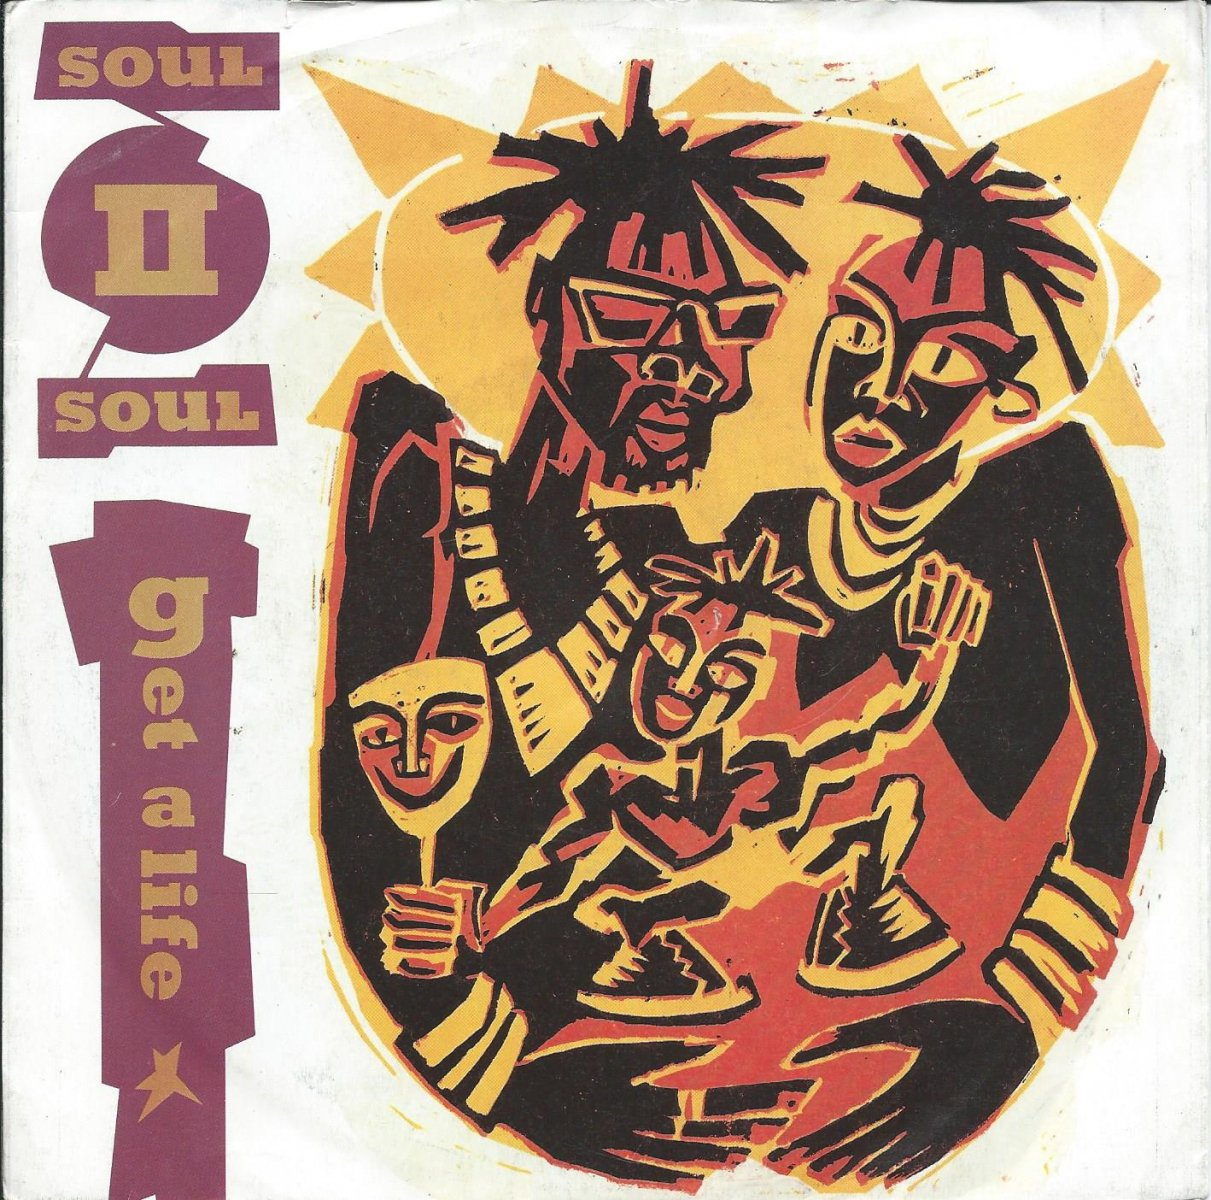 SOUL II SOUL / GET A LIFE / JAZZIE'S GROOVE (NEW VERSION) (7